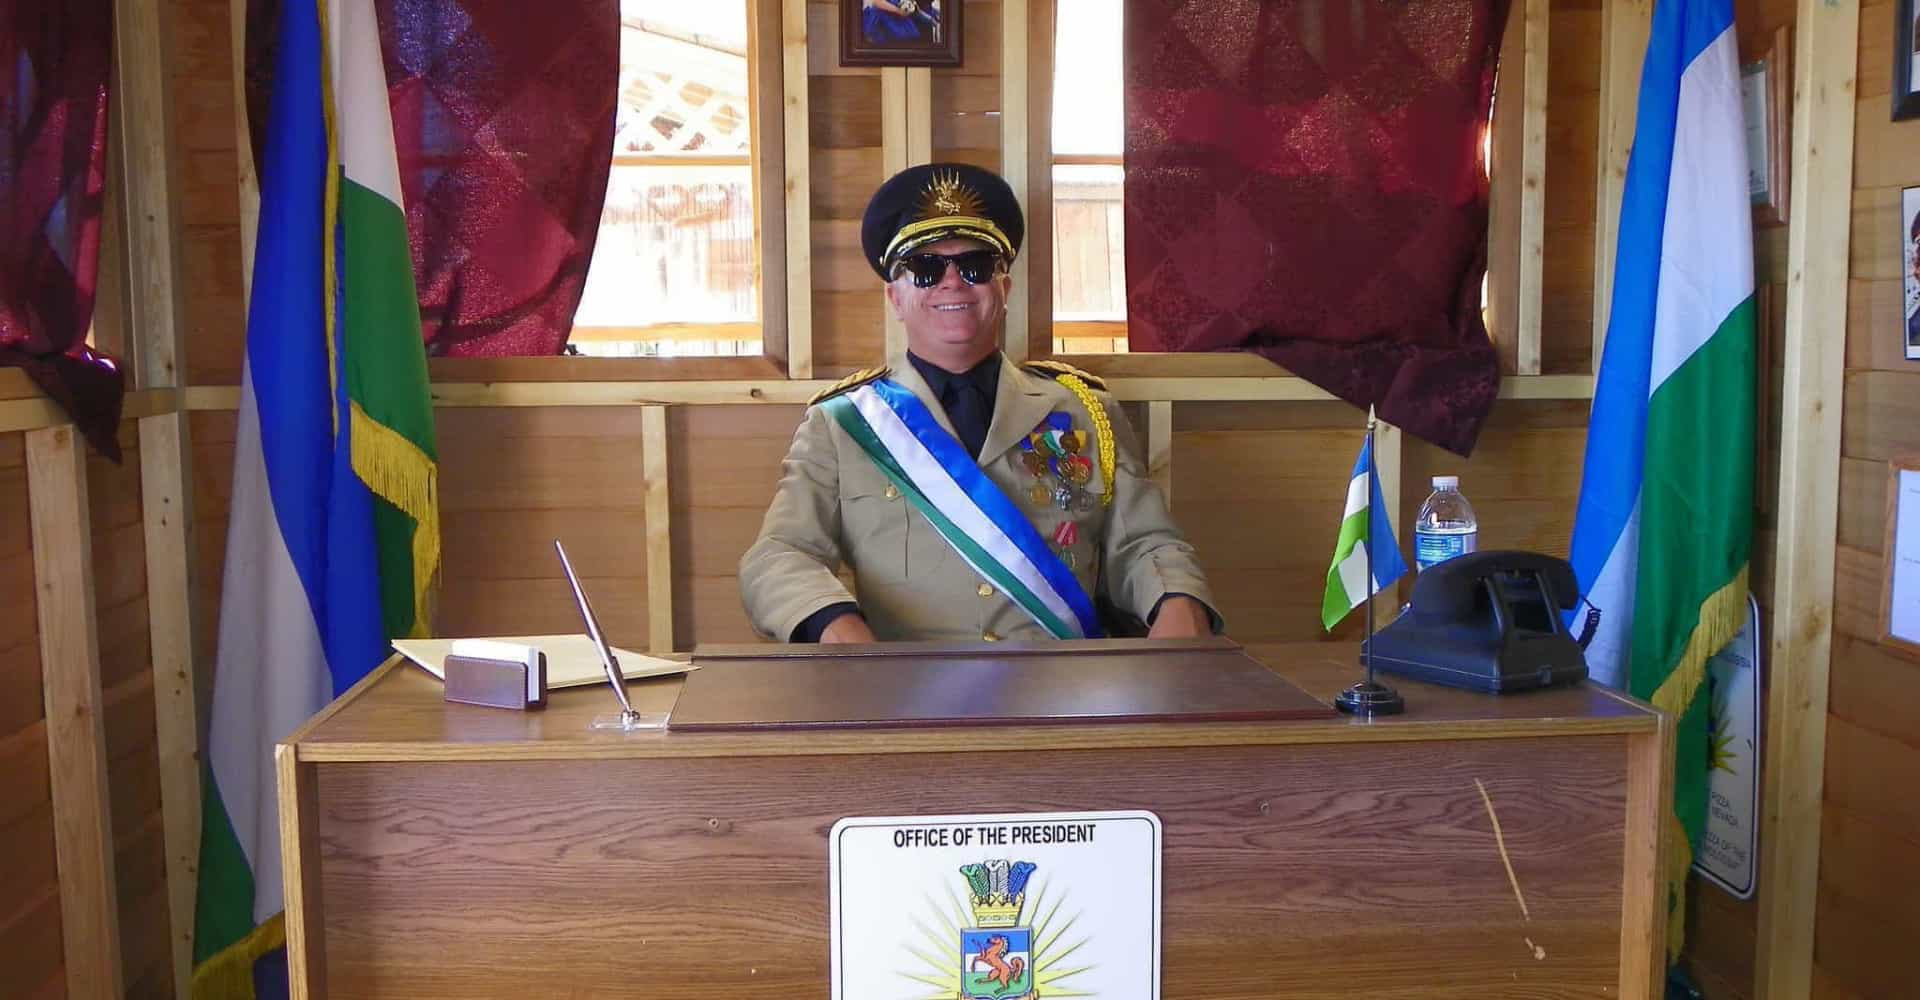 Micronations around the world that you had no idea existed